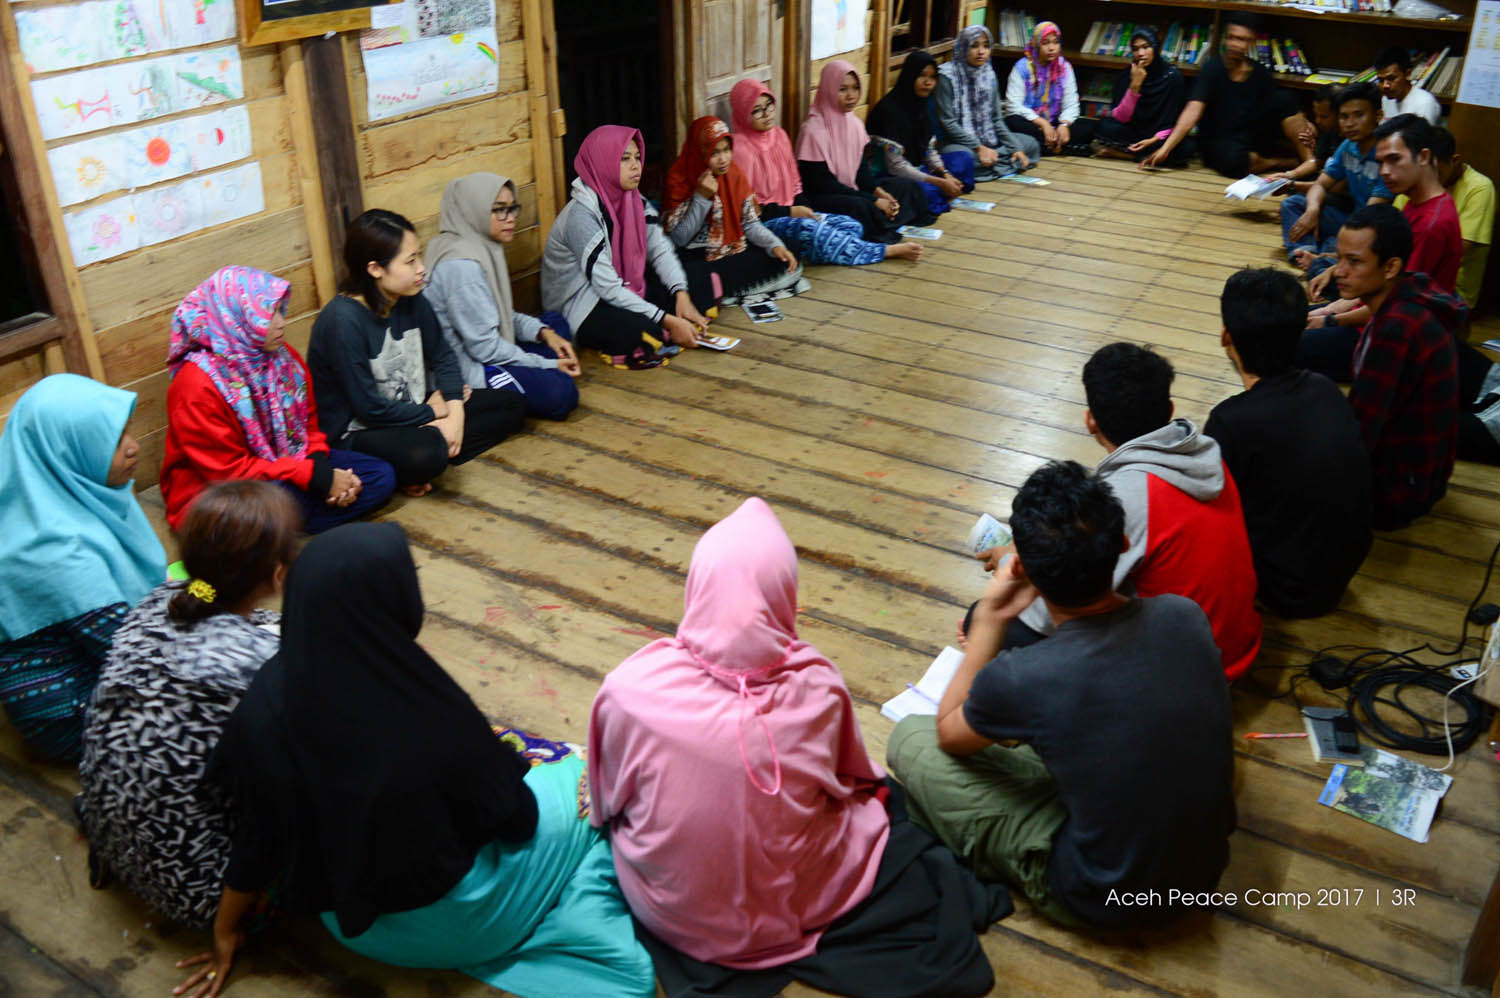 Orientasi Aceh Peace Camp 2017